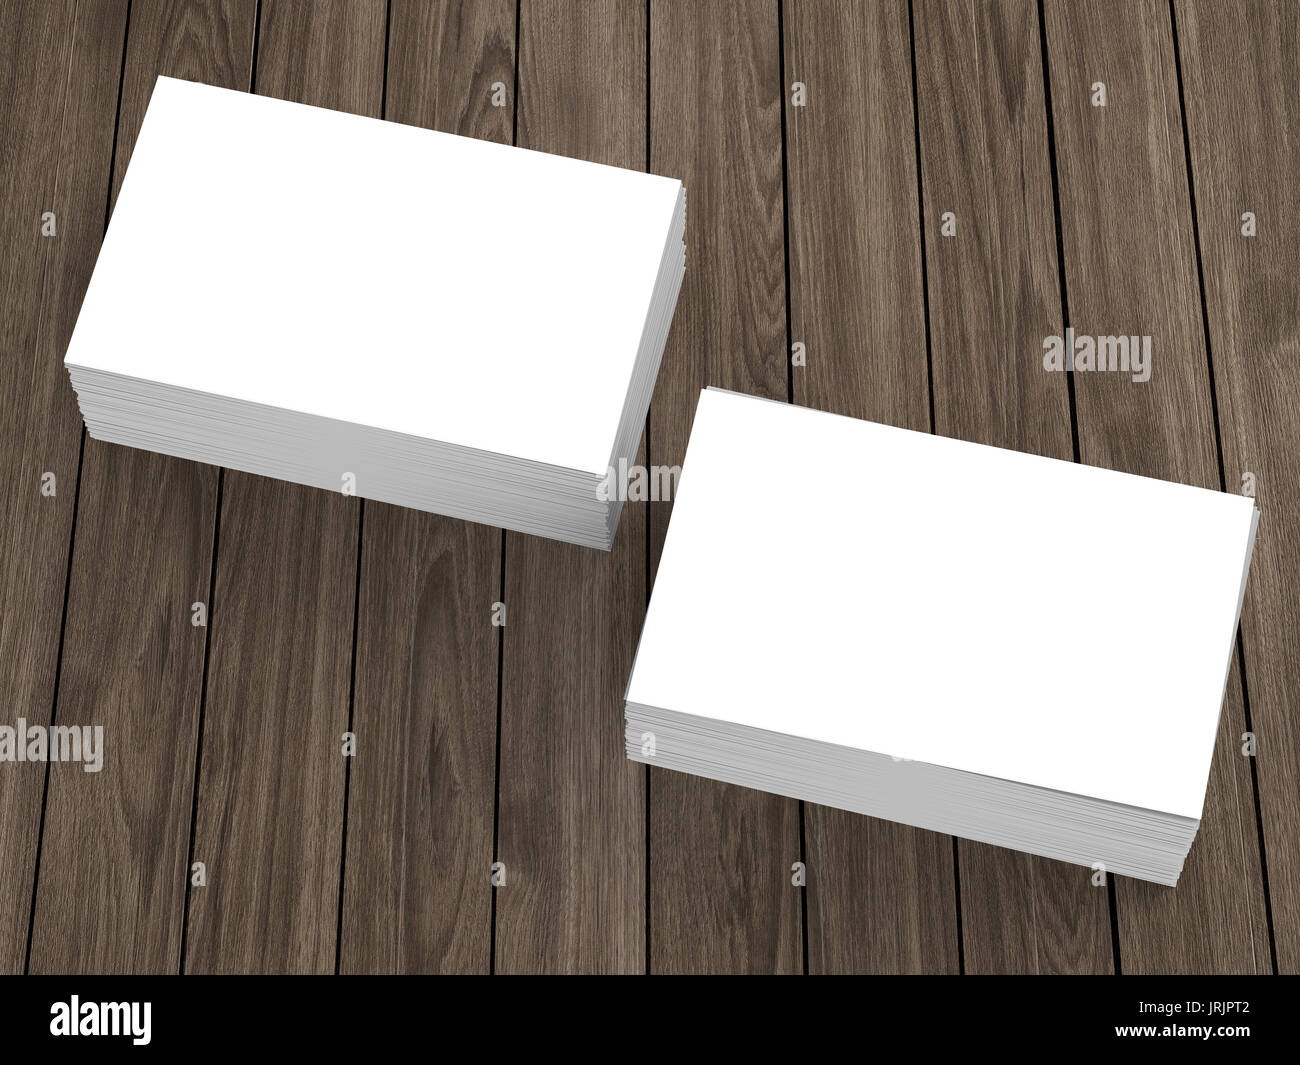 Stack of white blank business cards or name cards stock photo stack of white blank business cards or name cards colourmoves